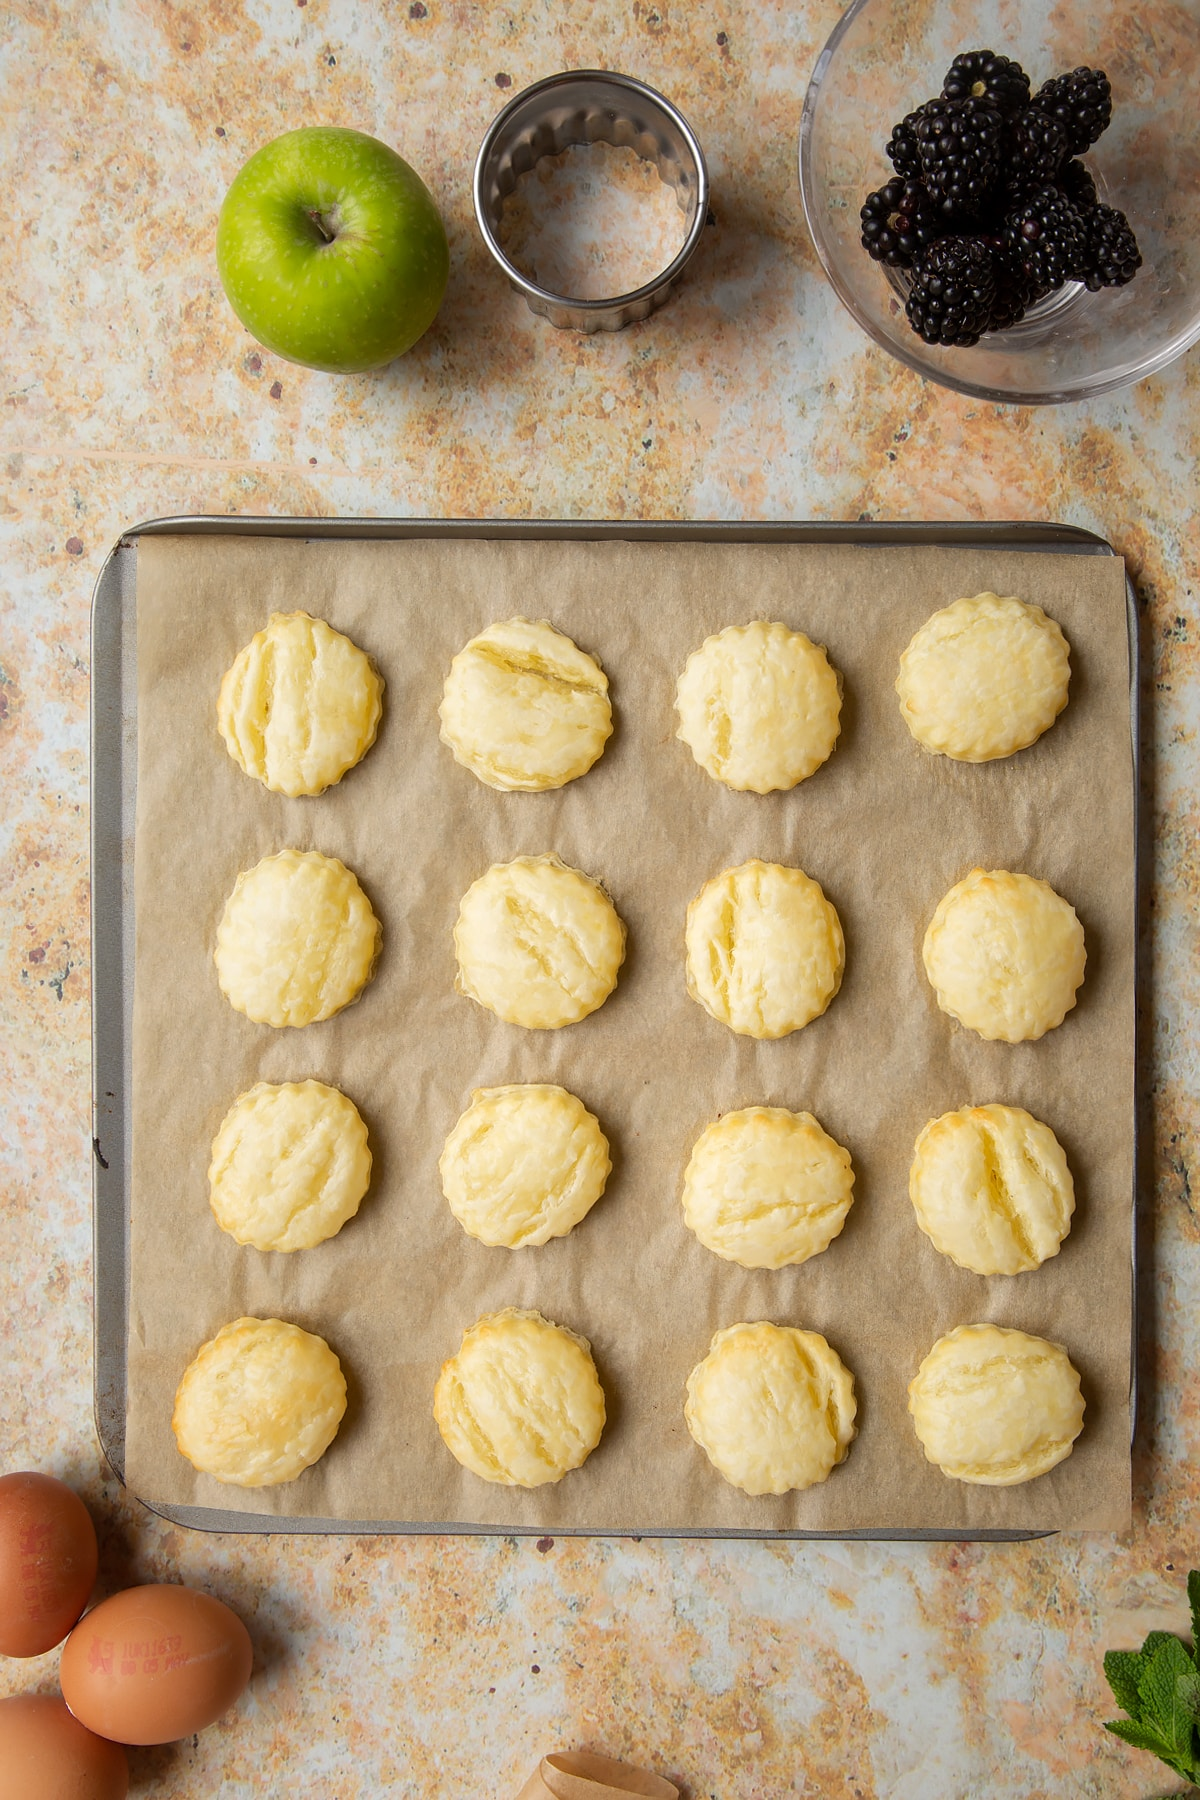 16 part-baked puff pastry discs sit on a lined baking sheet.